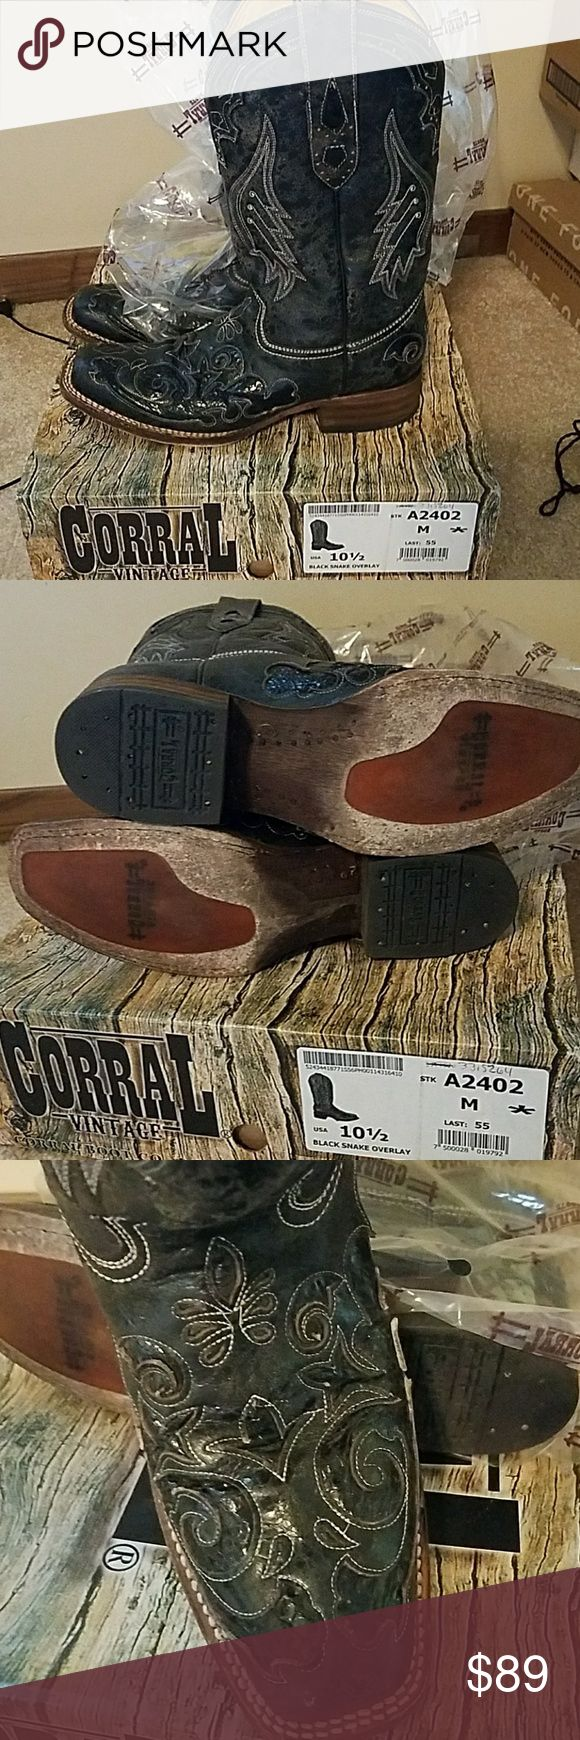 Corral Vintage Boots Corral Vintage Boot Co. Black Snake Overlay boots in size 10.5. Worn 3 times and stored in the box,  with the  plastic on them. Corral Boot Co. Shoes Heeled Boots